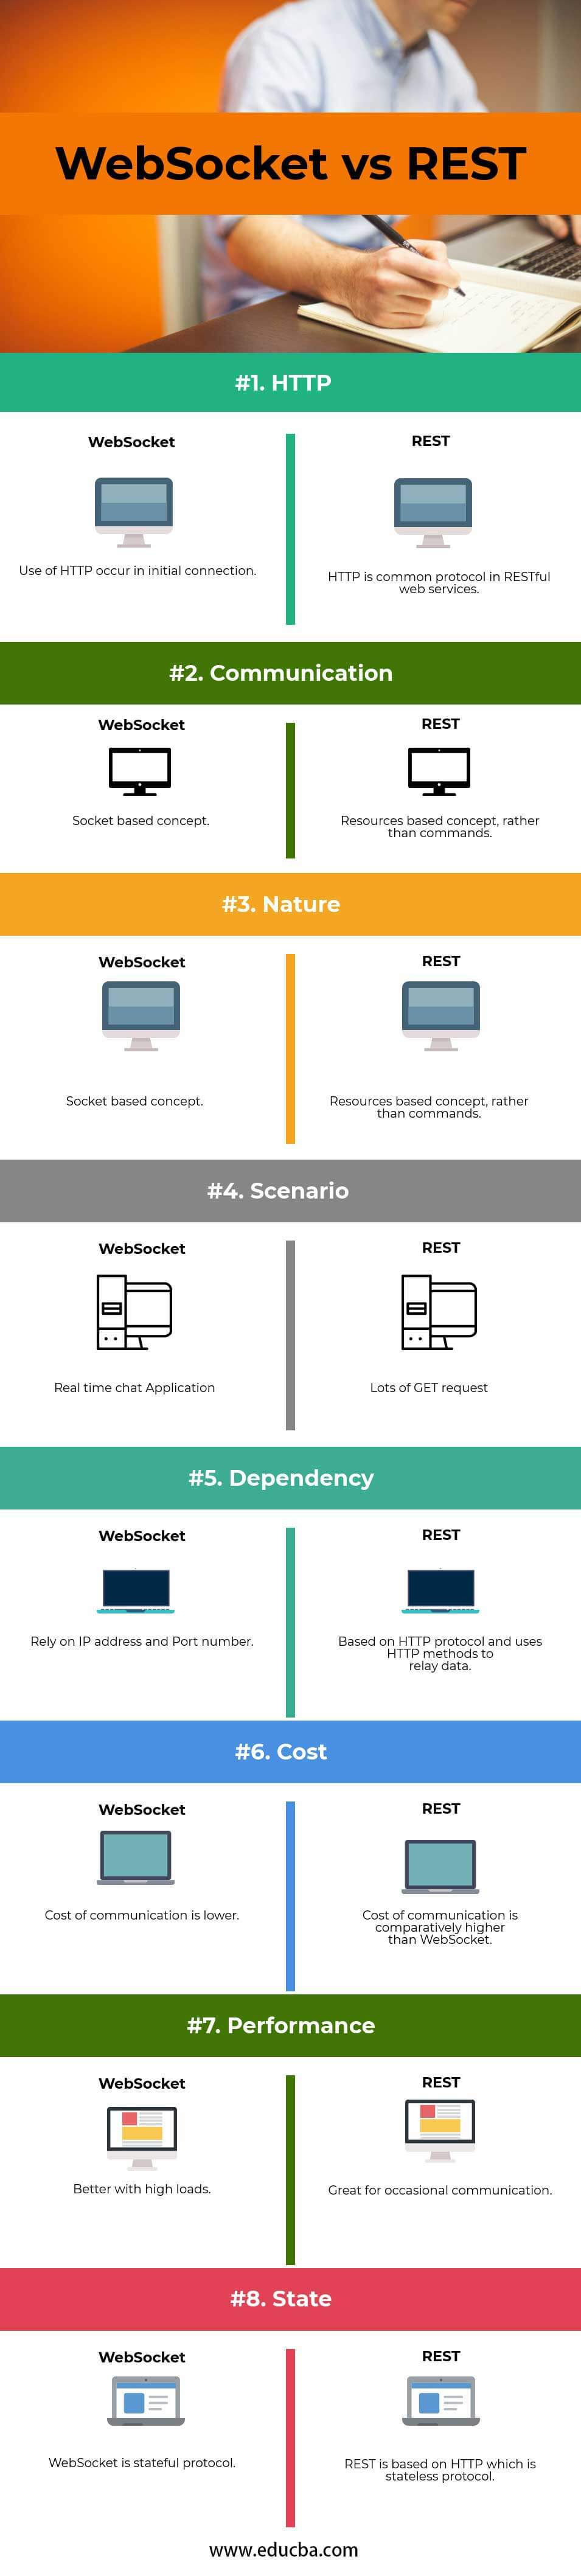 WebSocket vs REST | Learn The 8 Important Differences